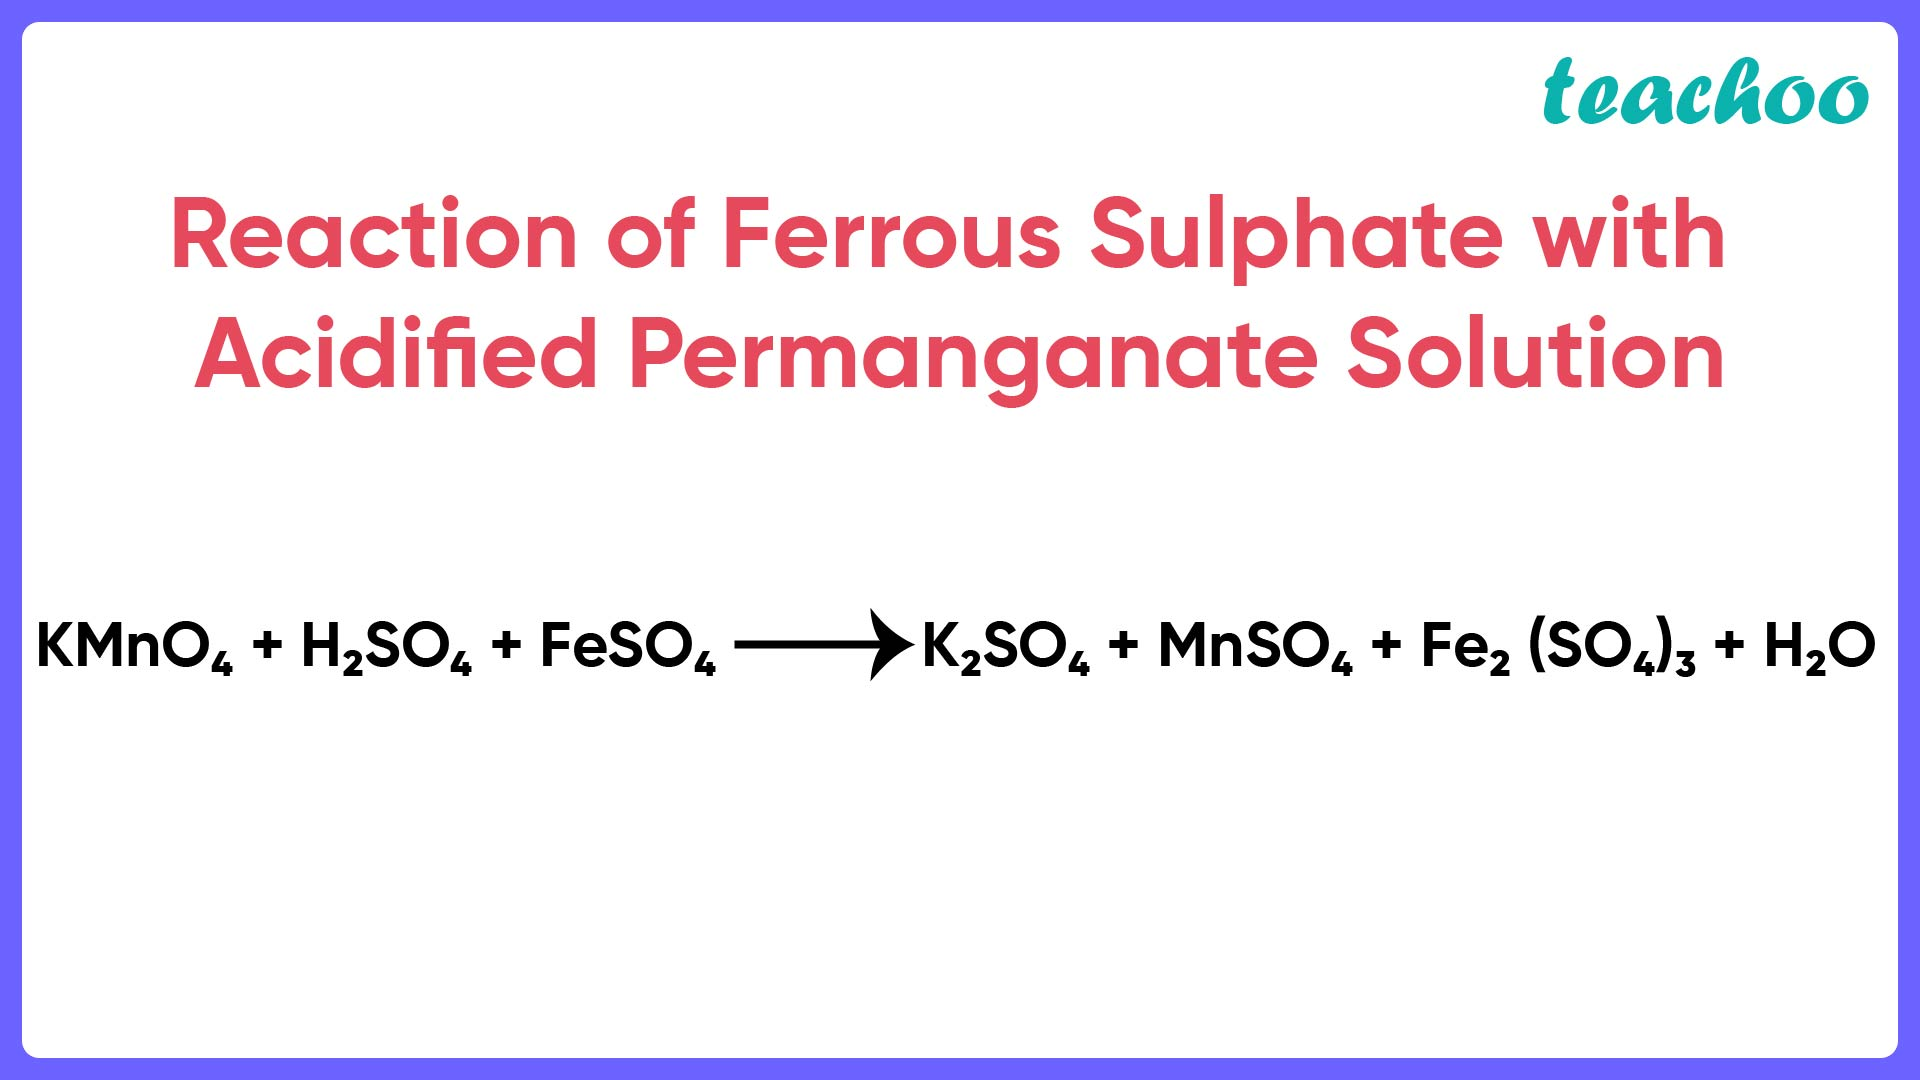 Reaction of Ferrous Sulphate with Acidified Permanganate Solution - Teachoo.jpg